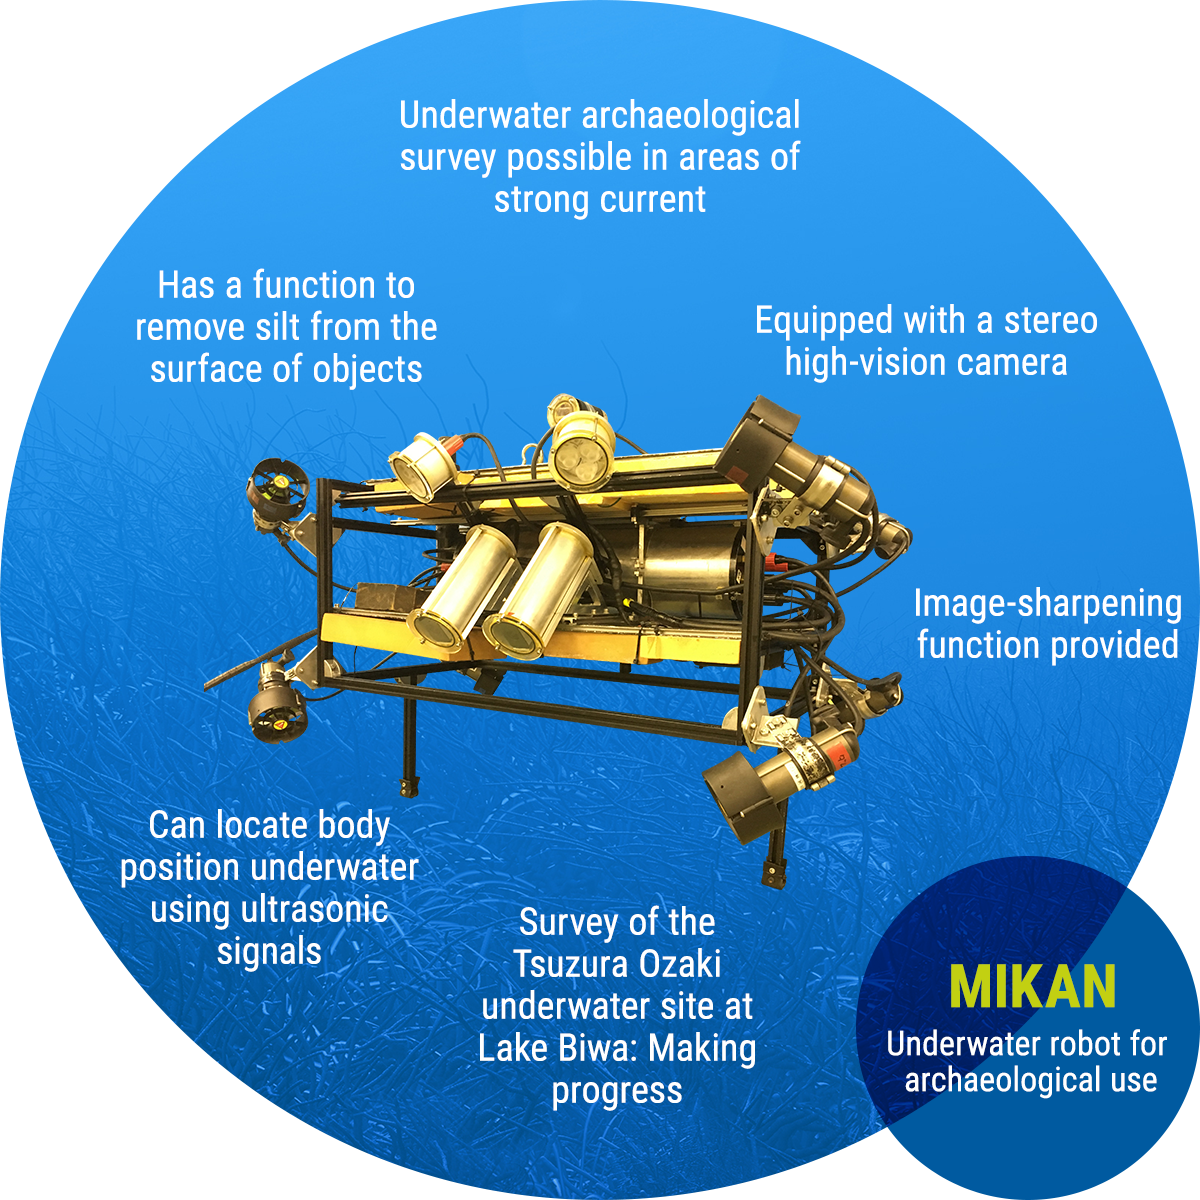 MIKAN: Underwater robot for archaeological use